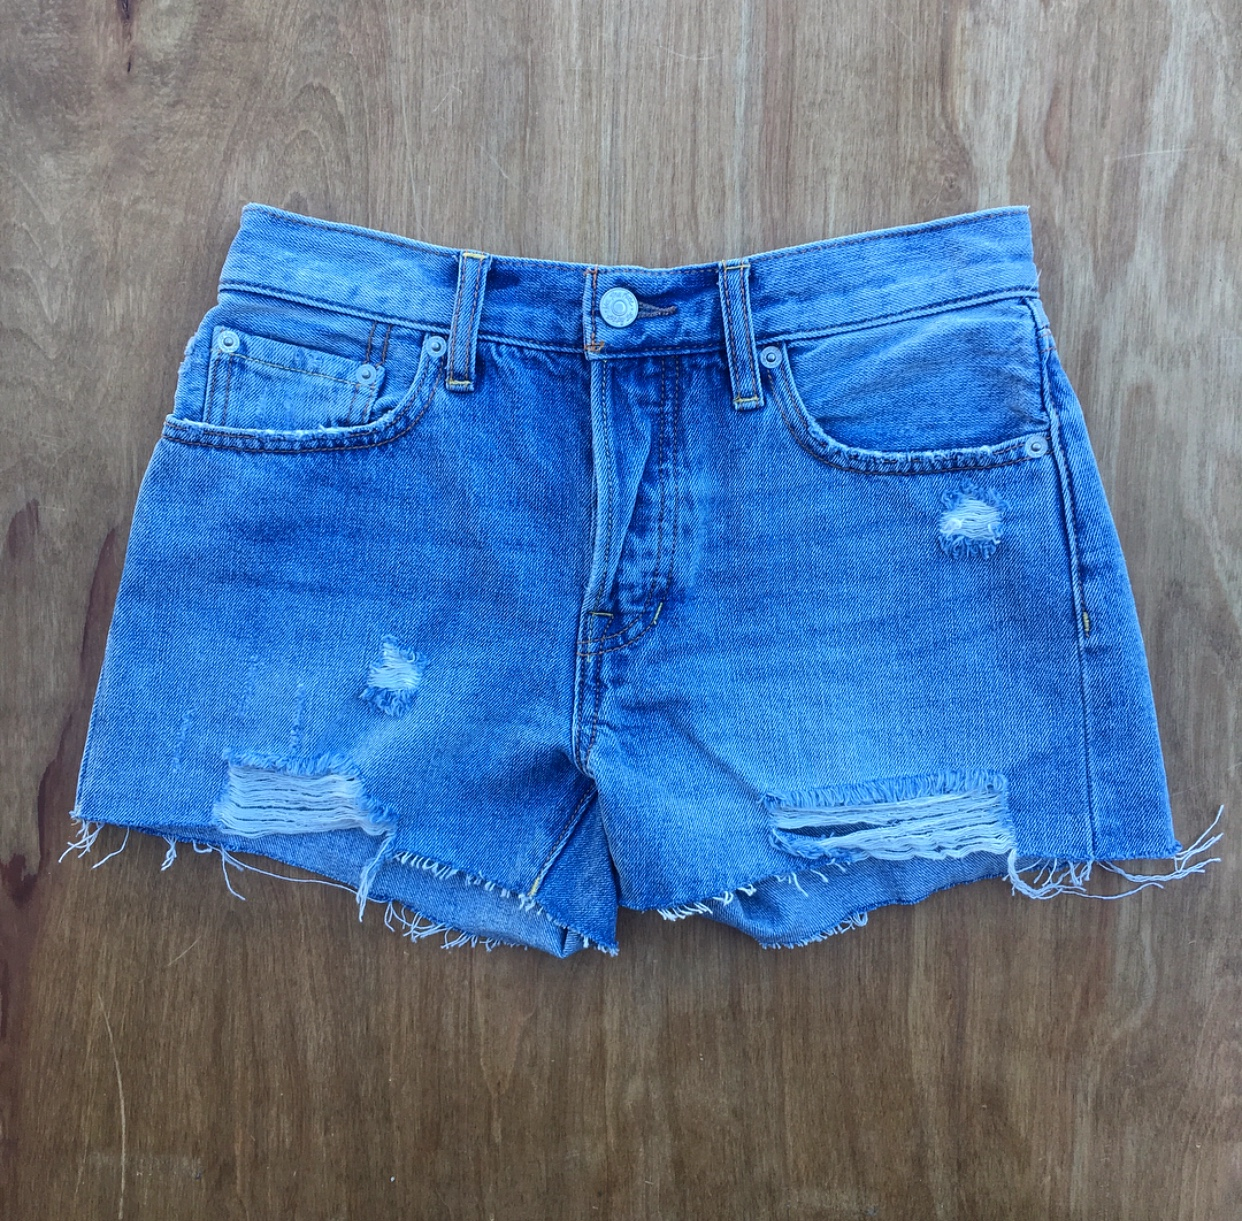 "#1 - First up, our Free People ""Wave"" Jean Shorts, are an absolute no brainer. You can never have too many jean shorts, and these comfy and casual shorts are perfect to throw on over a bathing suit, or dress up with a cute blouse for a night out!"